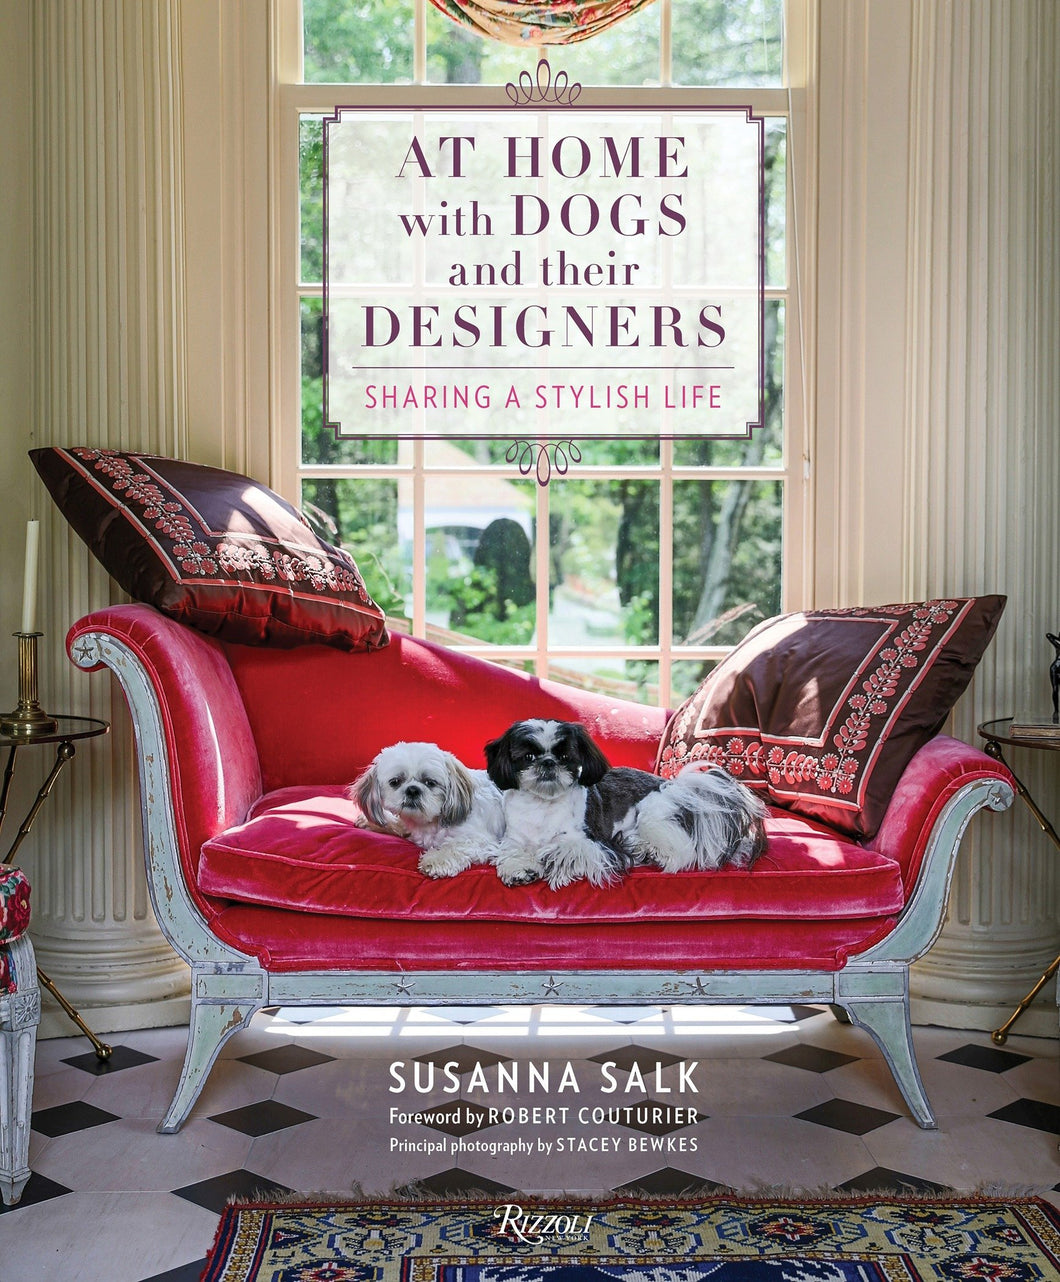 At Home with Dogs